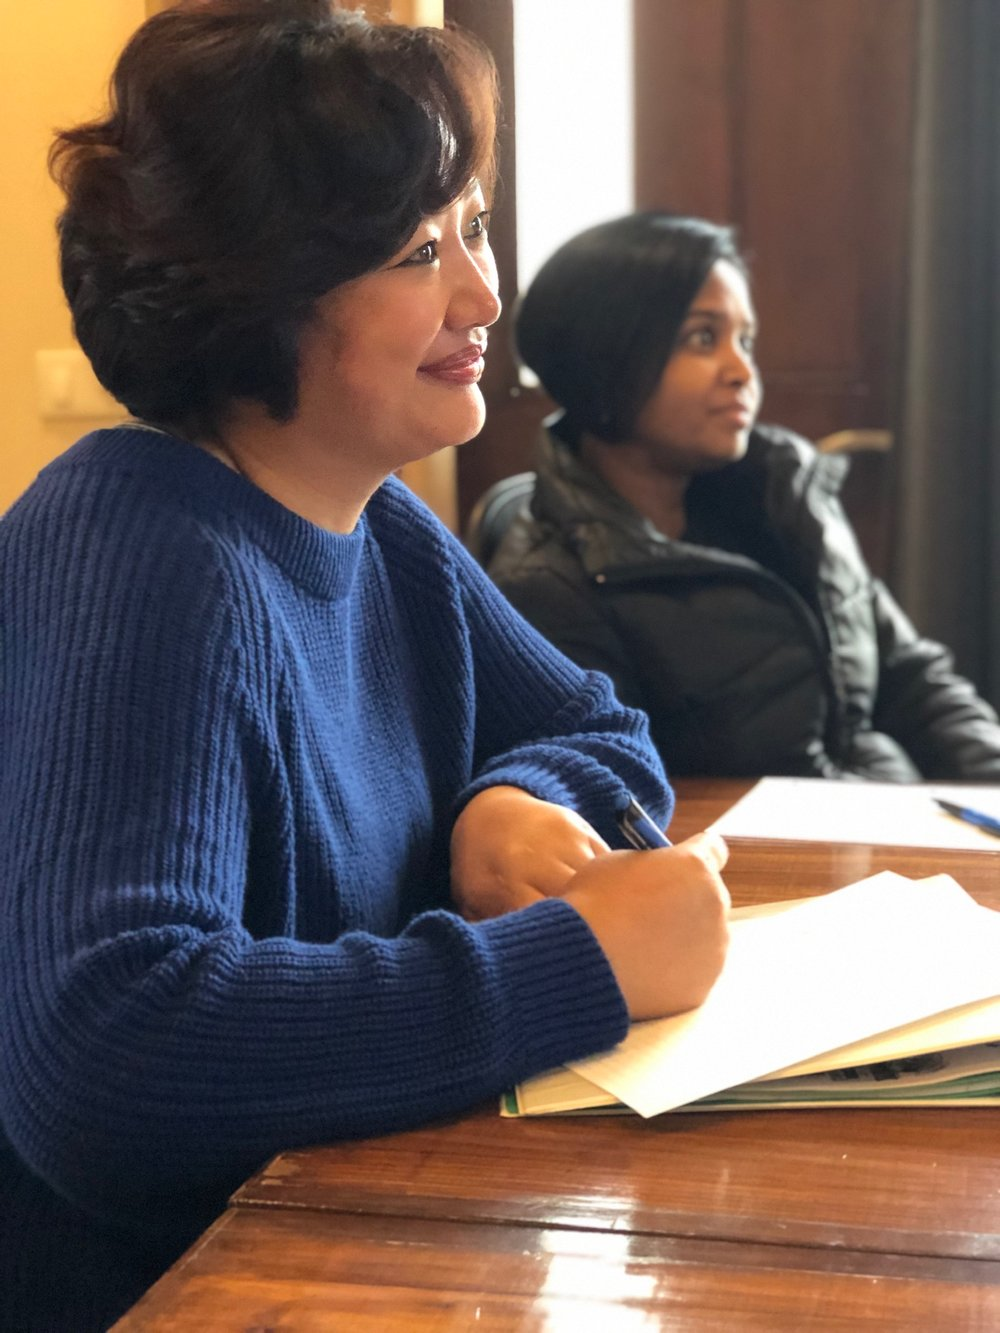 With Rose (foreground) and Sneha (background), we reviewed our last two years of activity in maternal health and made plans with how to move forward in our program area of women's health education.